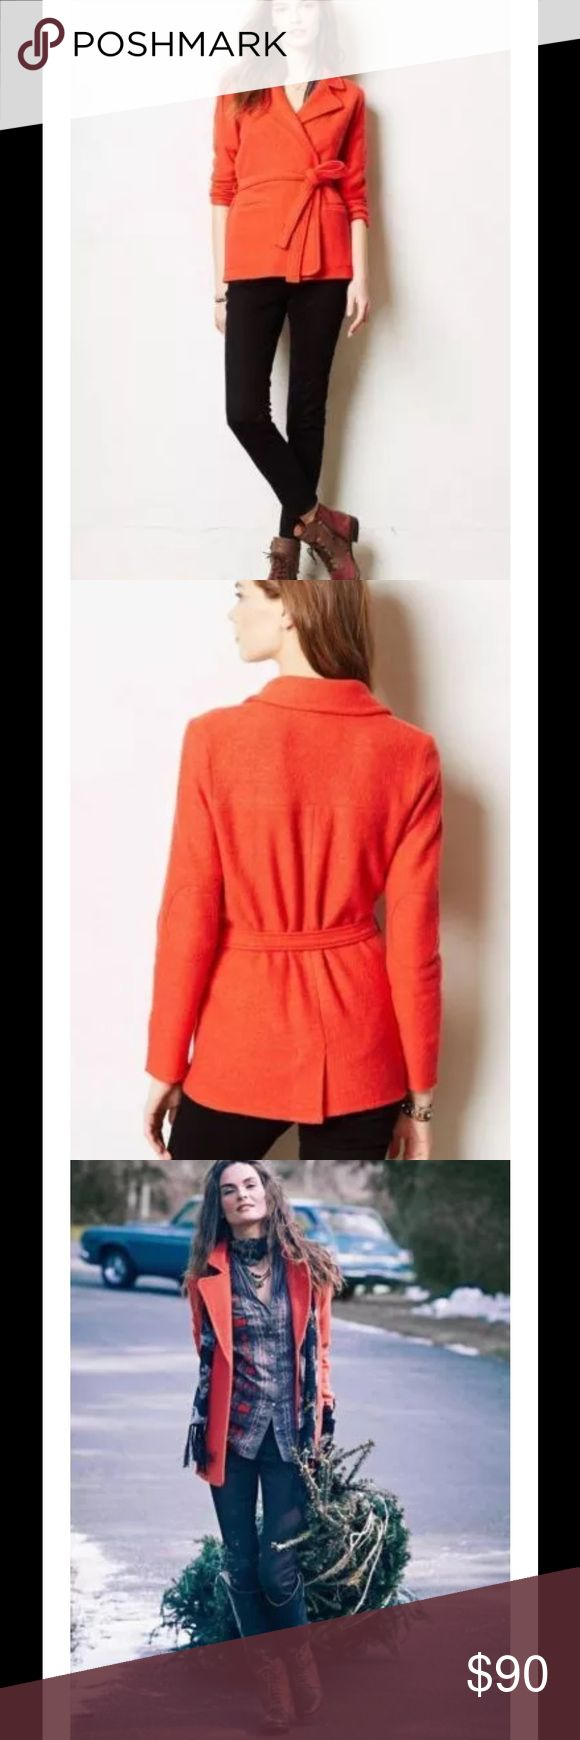 ANTHROPOLOGIE CELESTA ORANGE SWEATER JACKET $168 ANTHROPOLOGIE SPARROW CELESTA BOILED WOOL ORANGE SWEATER JACKET SZ XL  Born out of a great love of knitwear and inspired by the social birds that live on several continents, Sparrow is dedicated to  making women feel at home wherever they are.  A win-win: This cozy indoor-outdoor layer is substantial enough to nip the chill while remaining never-want-to-take-it-off chic. By Sparrow Open front Ties at waist (removable belt) Unlined Front…